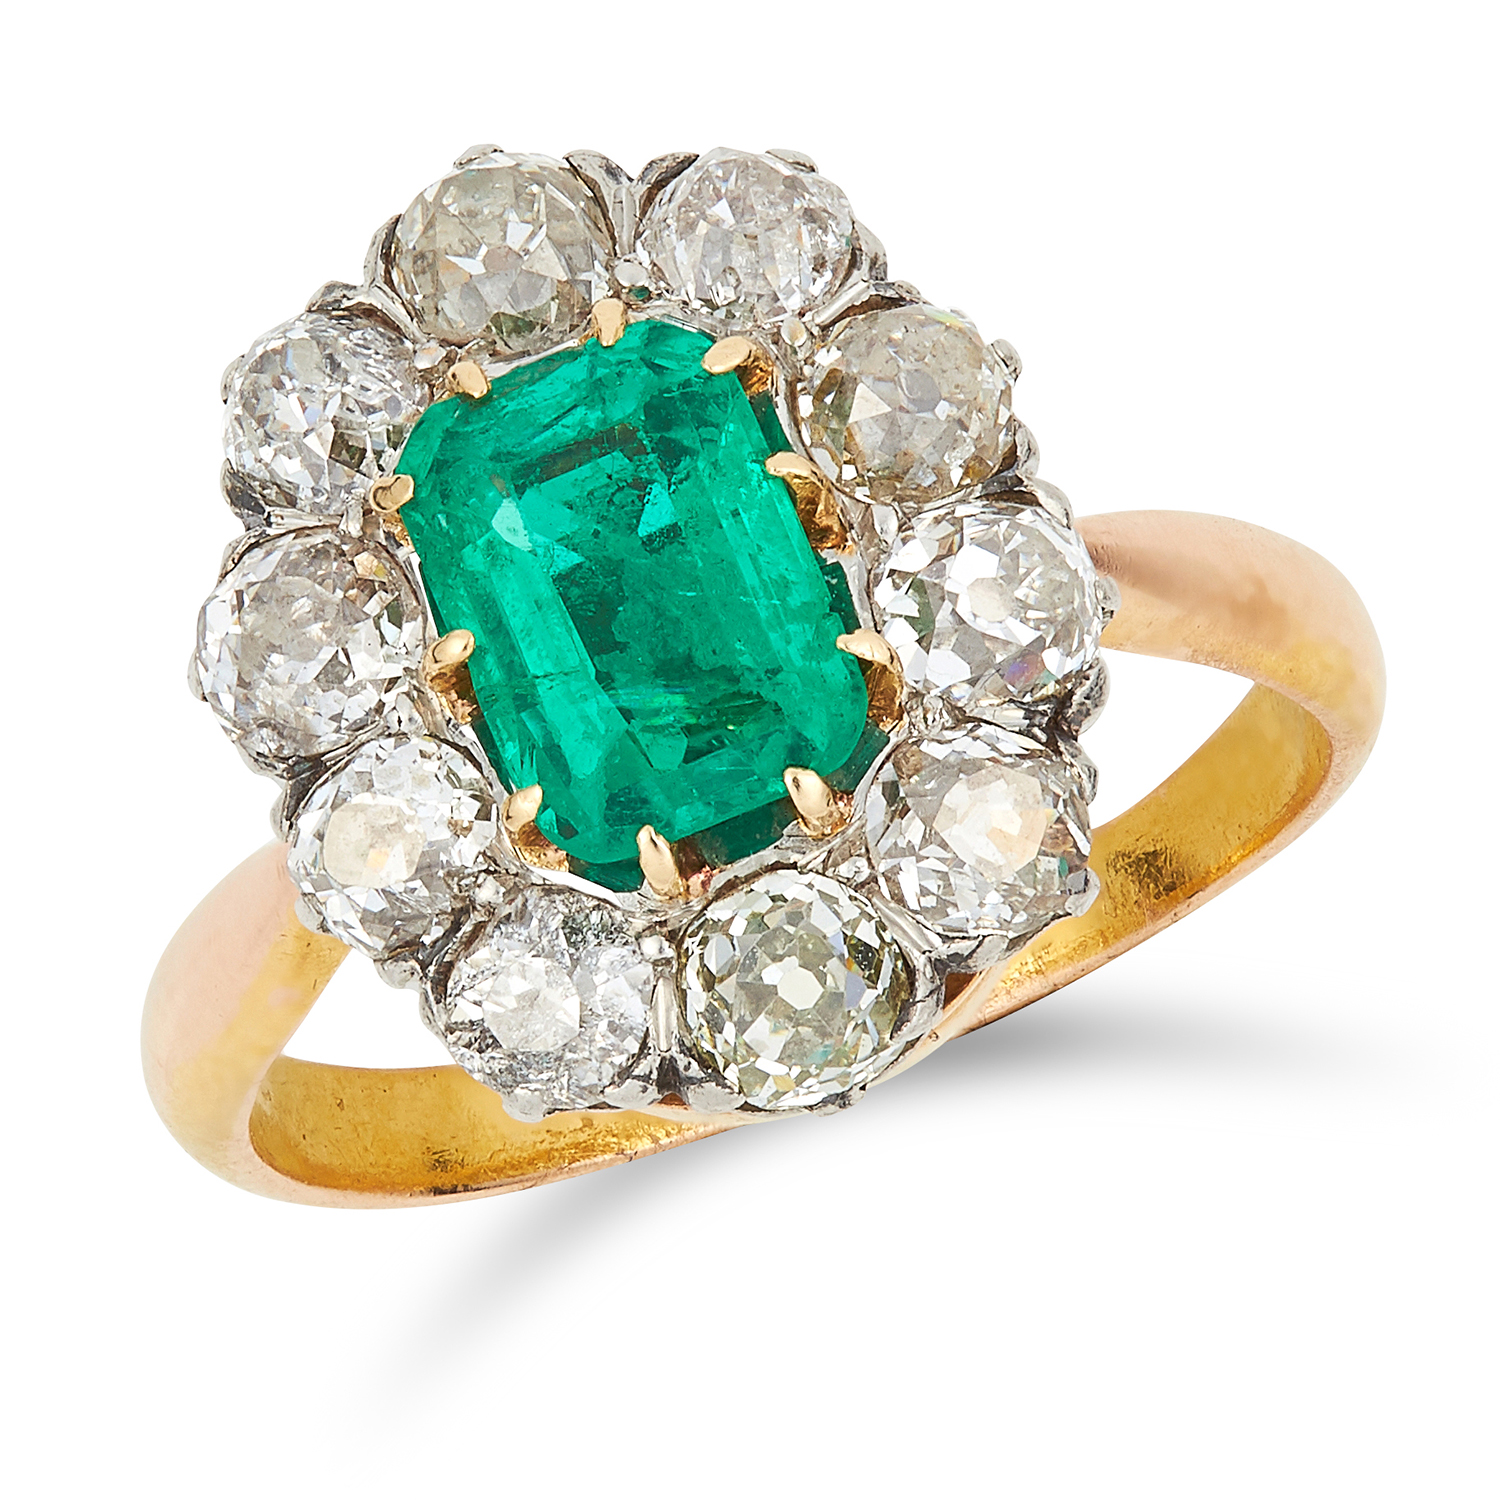 Los 39 - ANTIQUE COLOMBIAN EMERALD AND DIAMOND CLUSTER RING set with an emerald cut emerald of